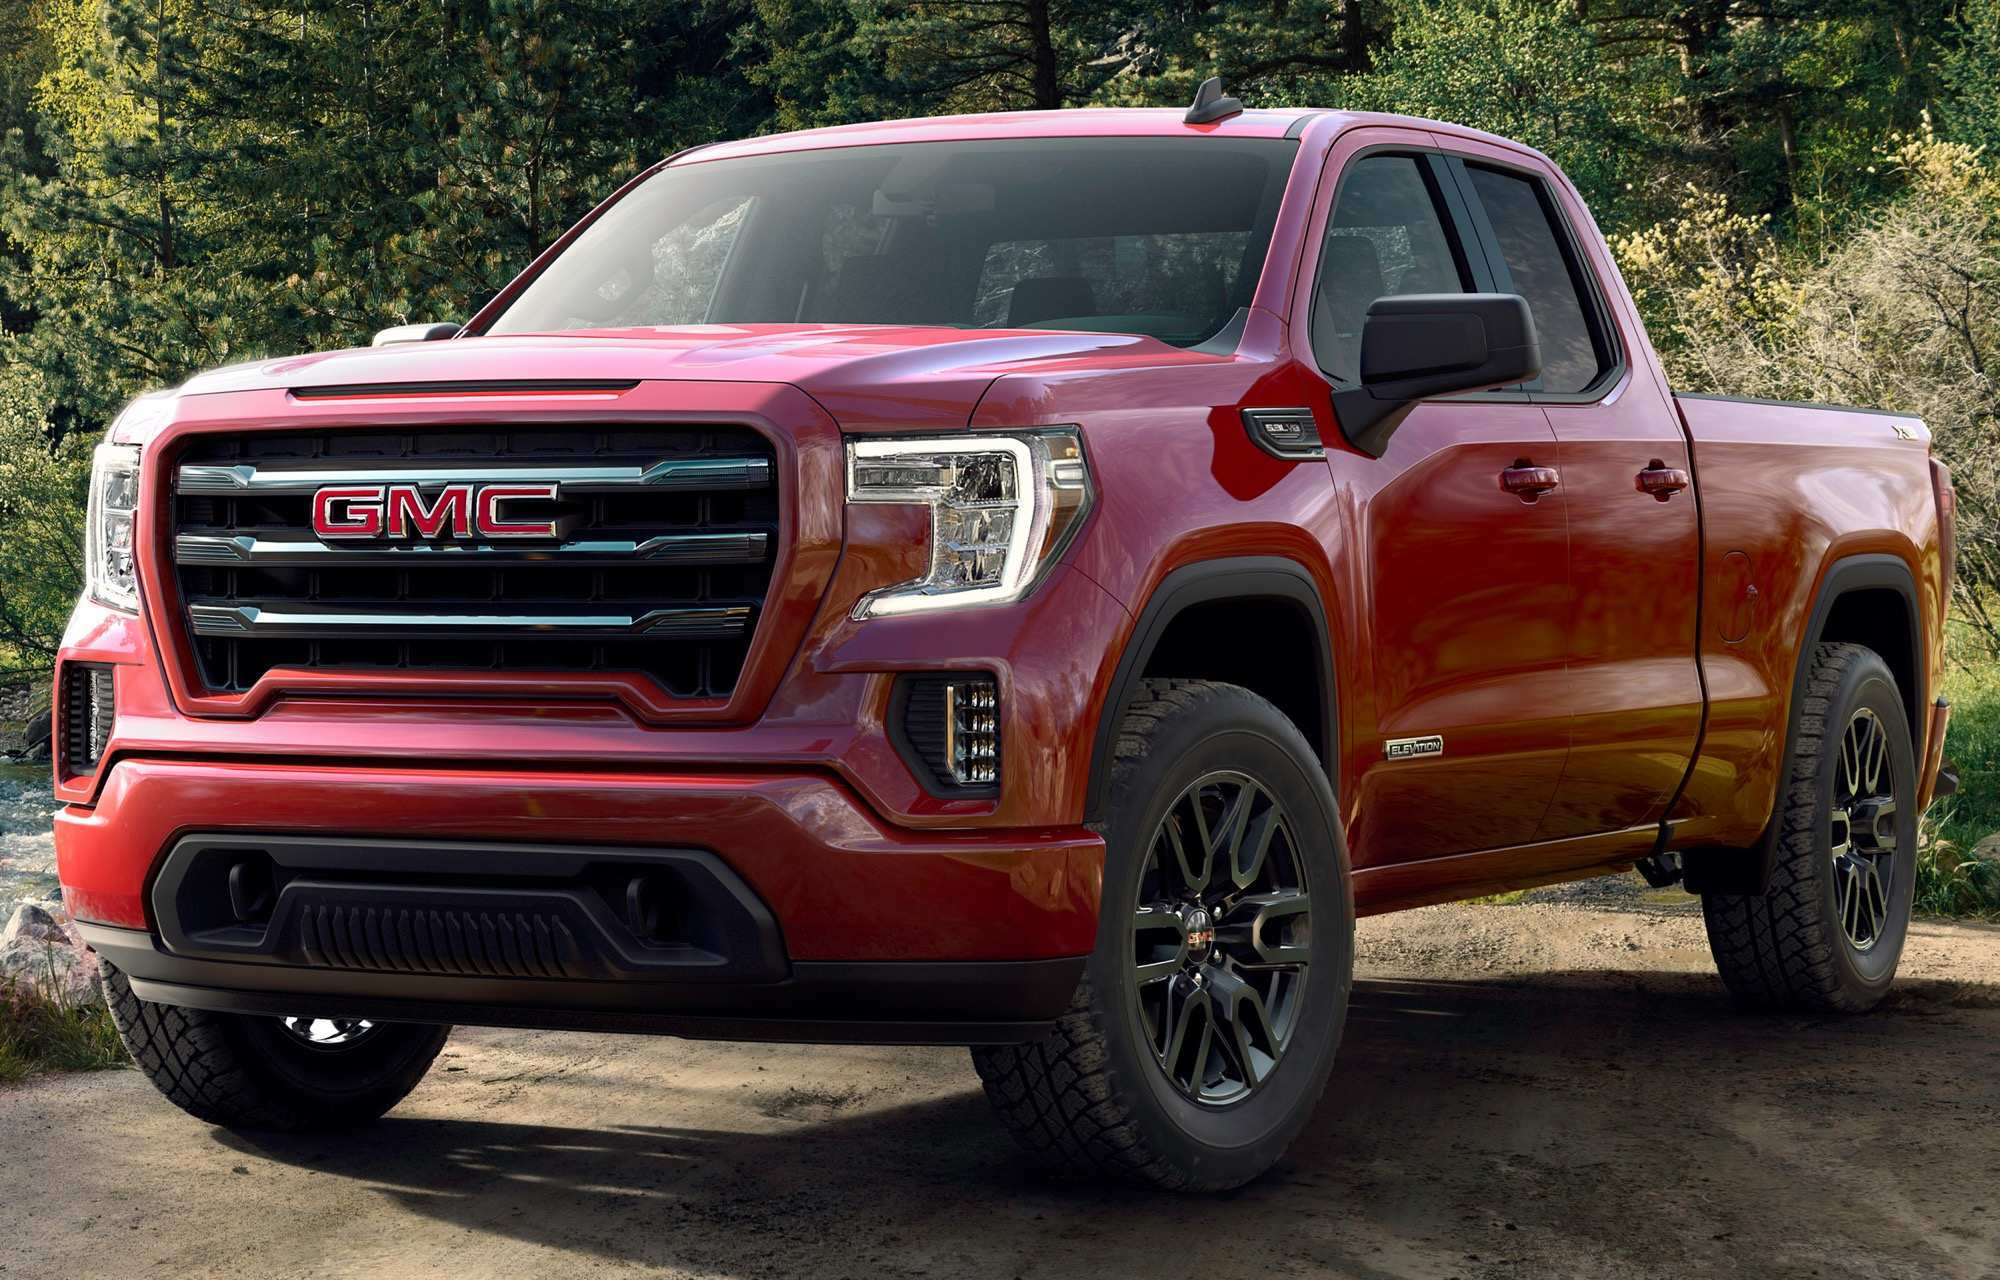 34 All New 2019 Gmc Release Redesign